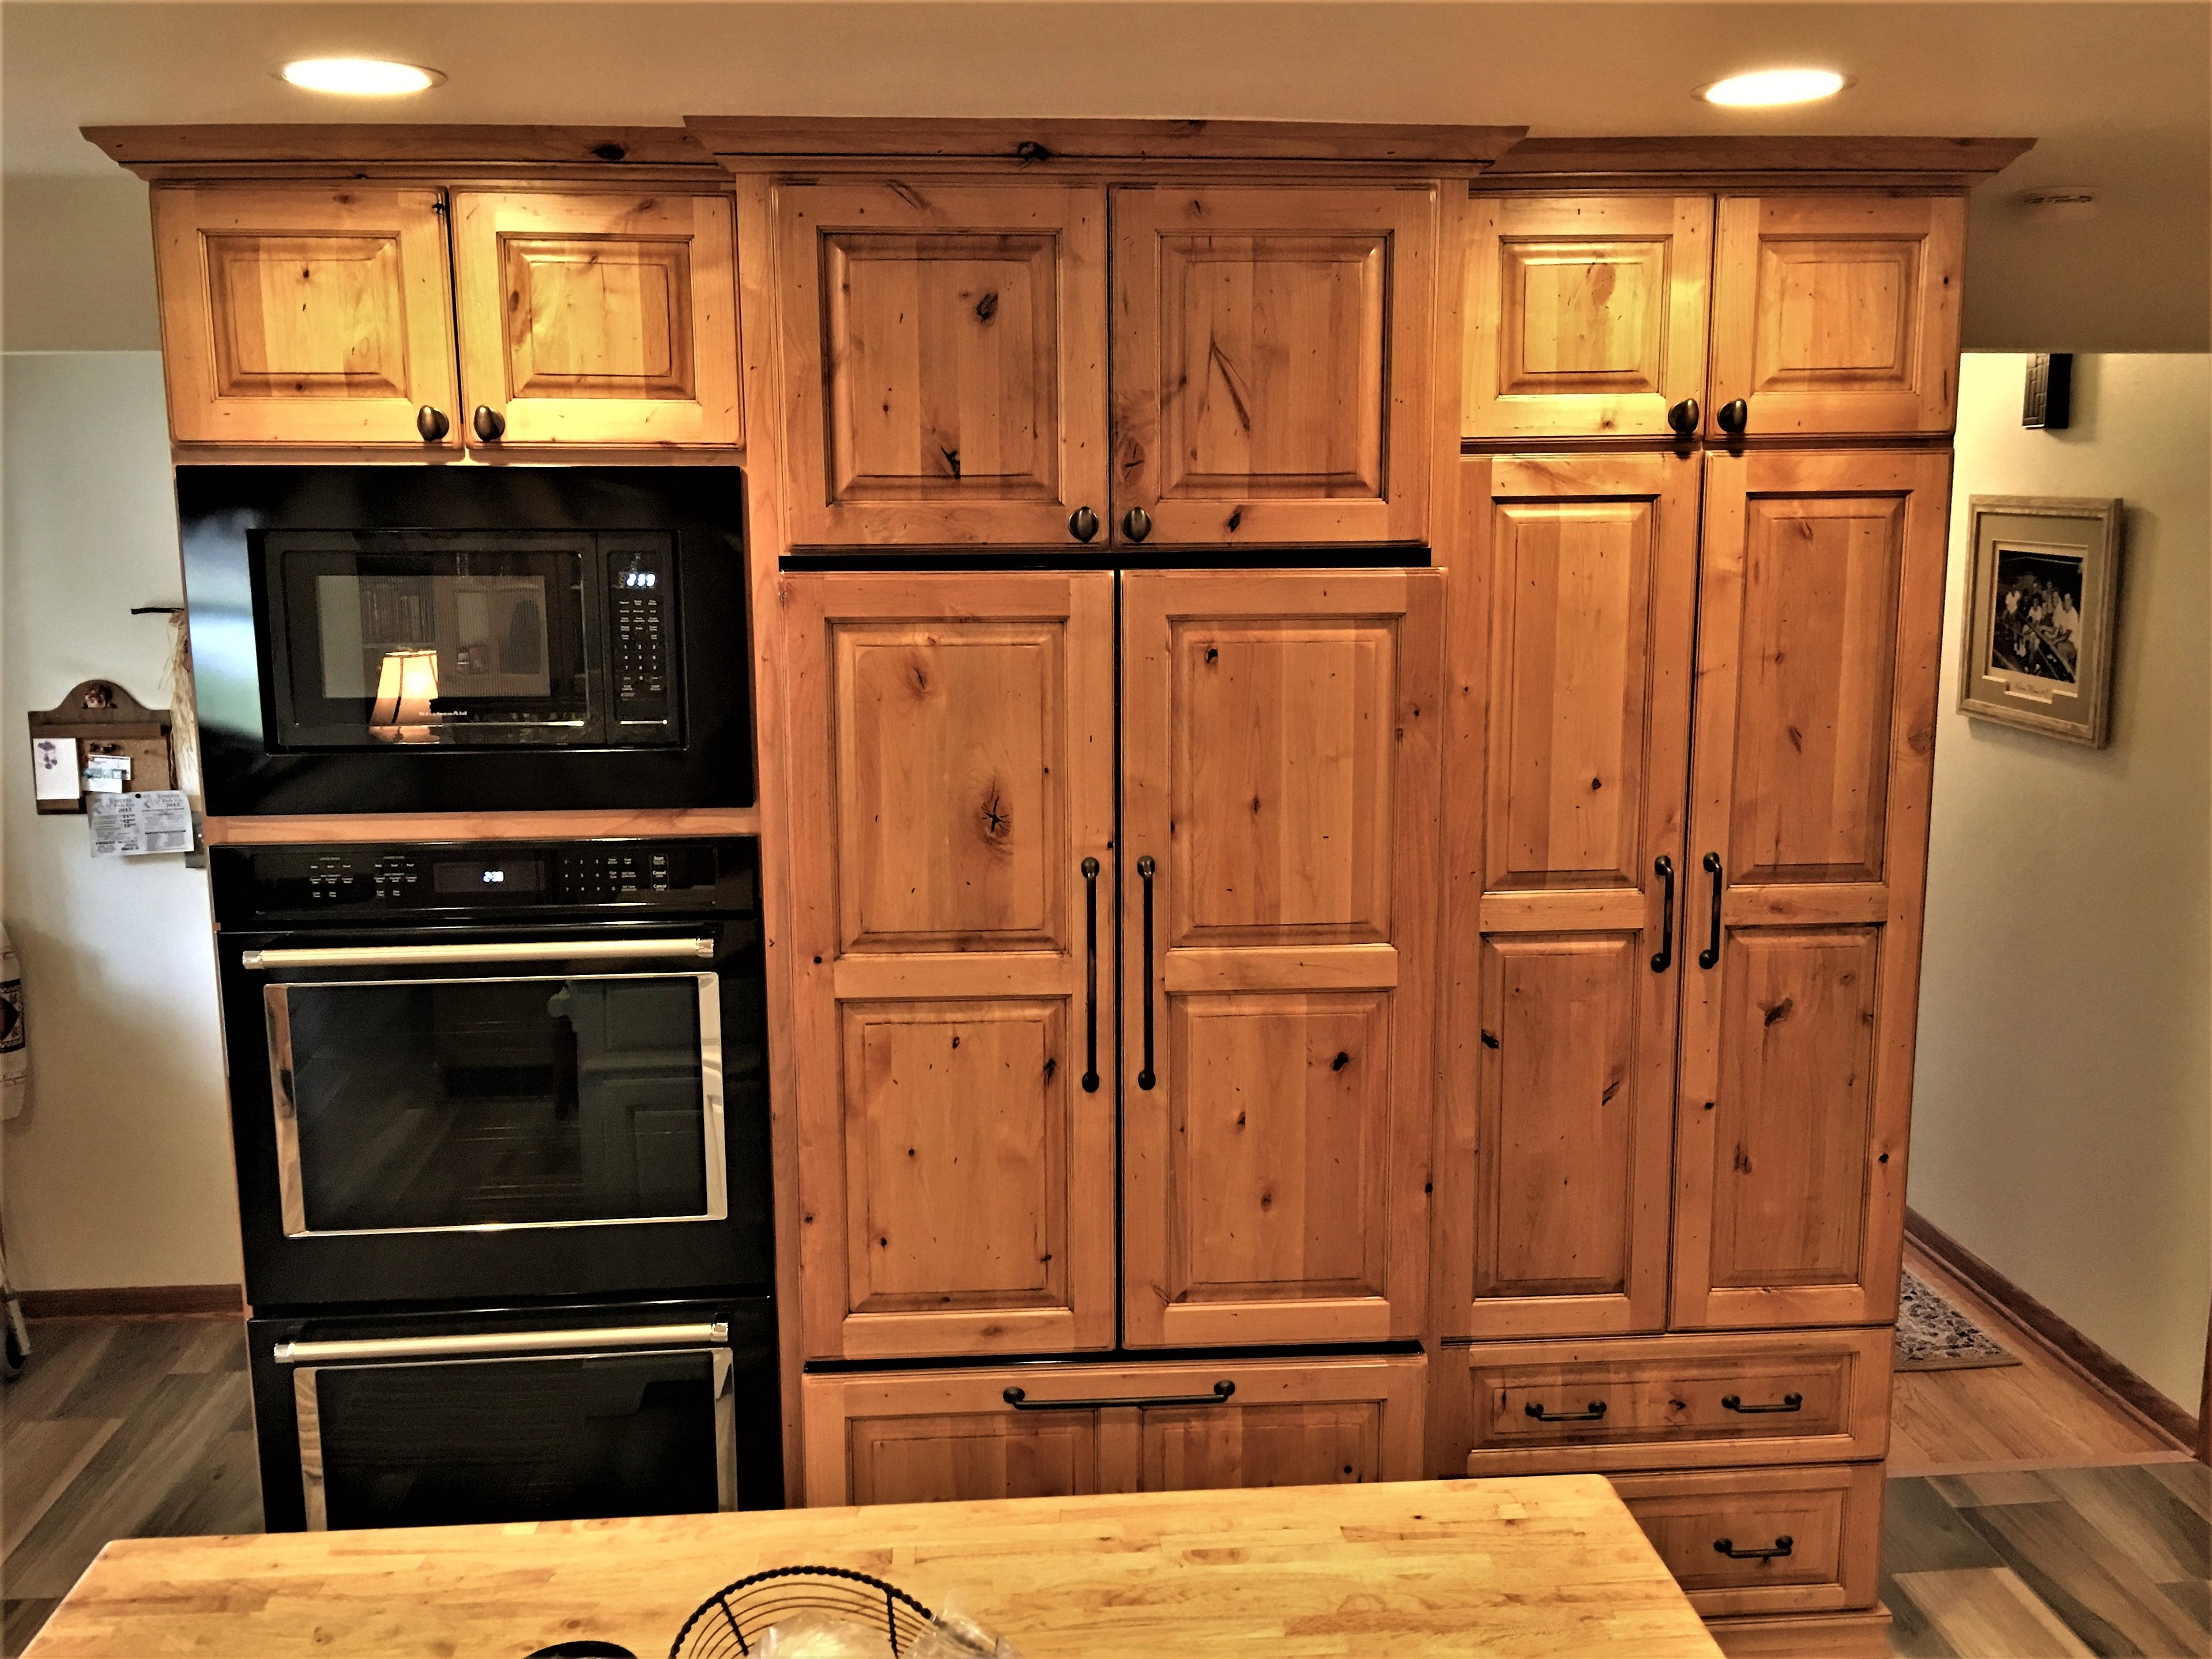 Rustic Kitchen New Showplace Cabinetry Rustic Alder Natural Stain With Black Glaze Additional Distressing Decor Custom Pantry Glass Decor Rustic Kitchen